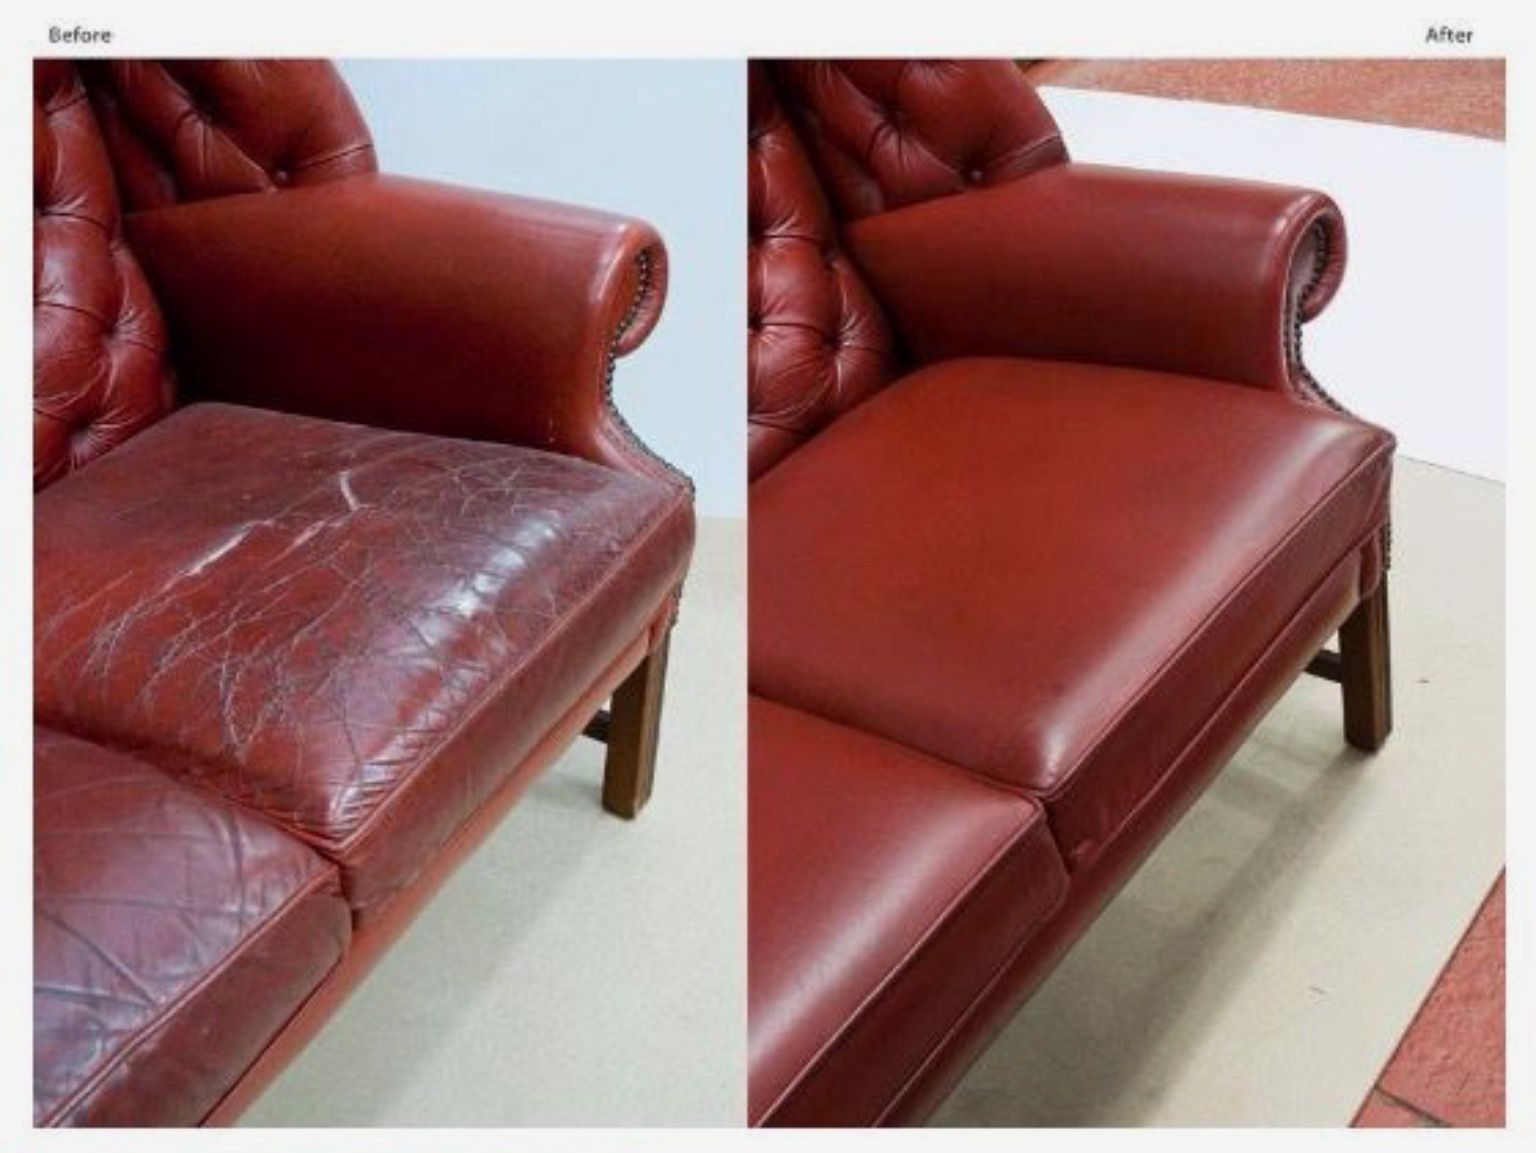 Furniture Repair Maryland Flaking White Bonded Leather